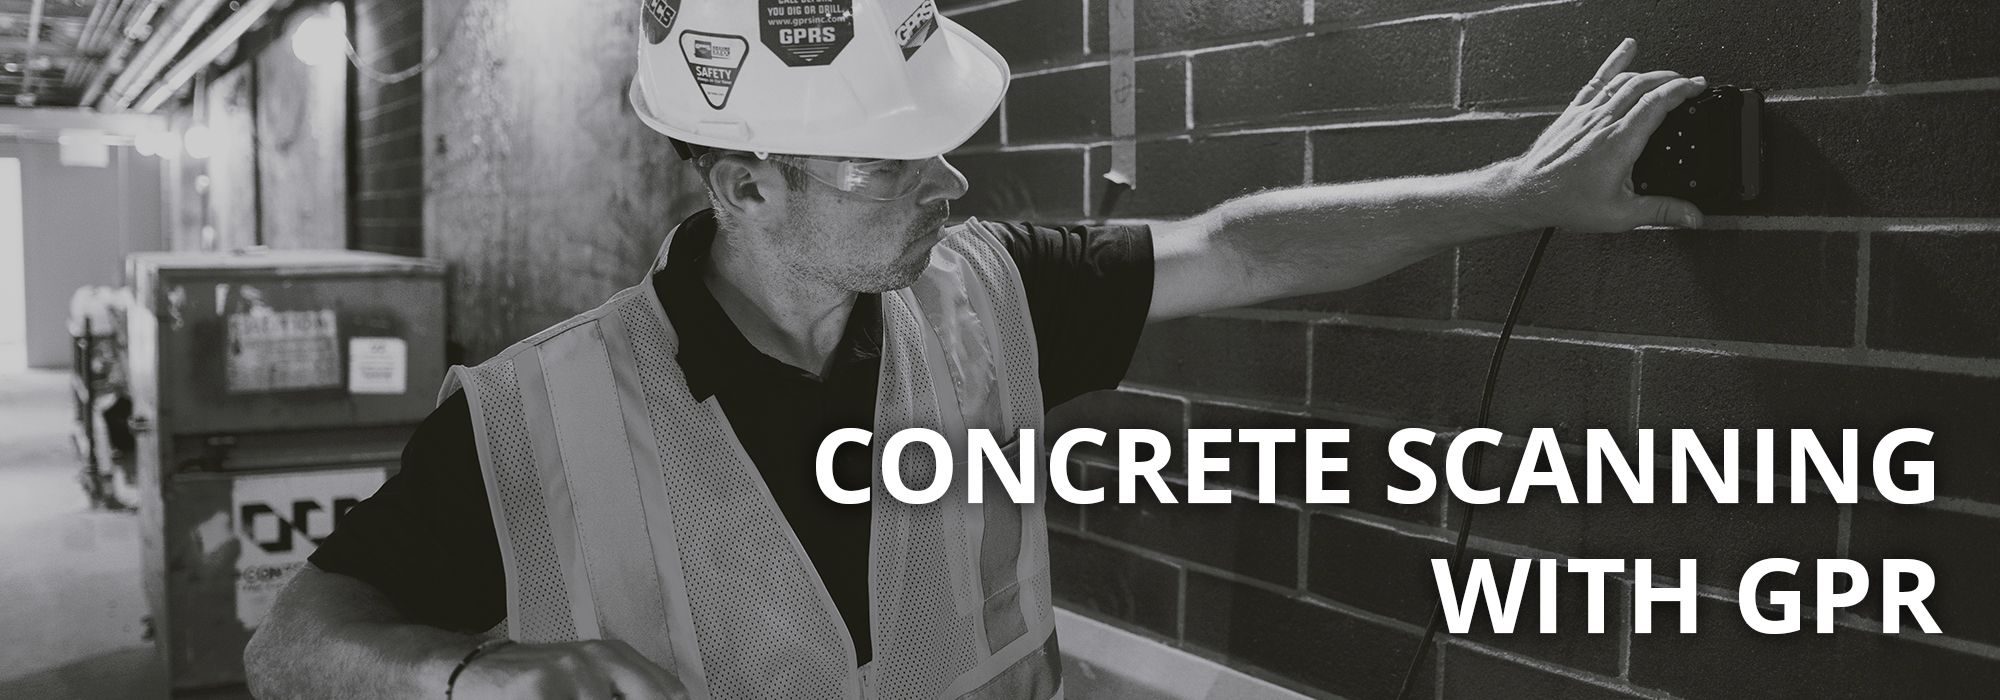 Concrete Scanning with GPRS